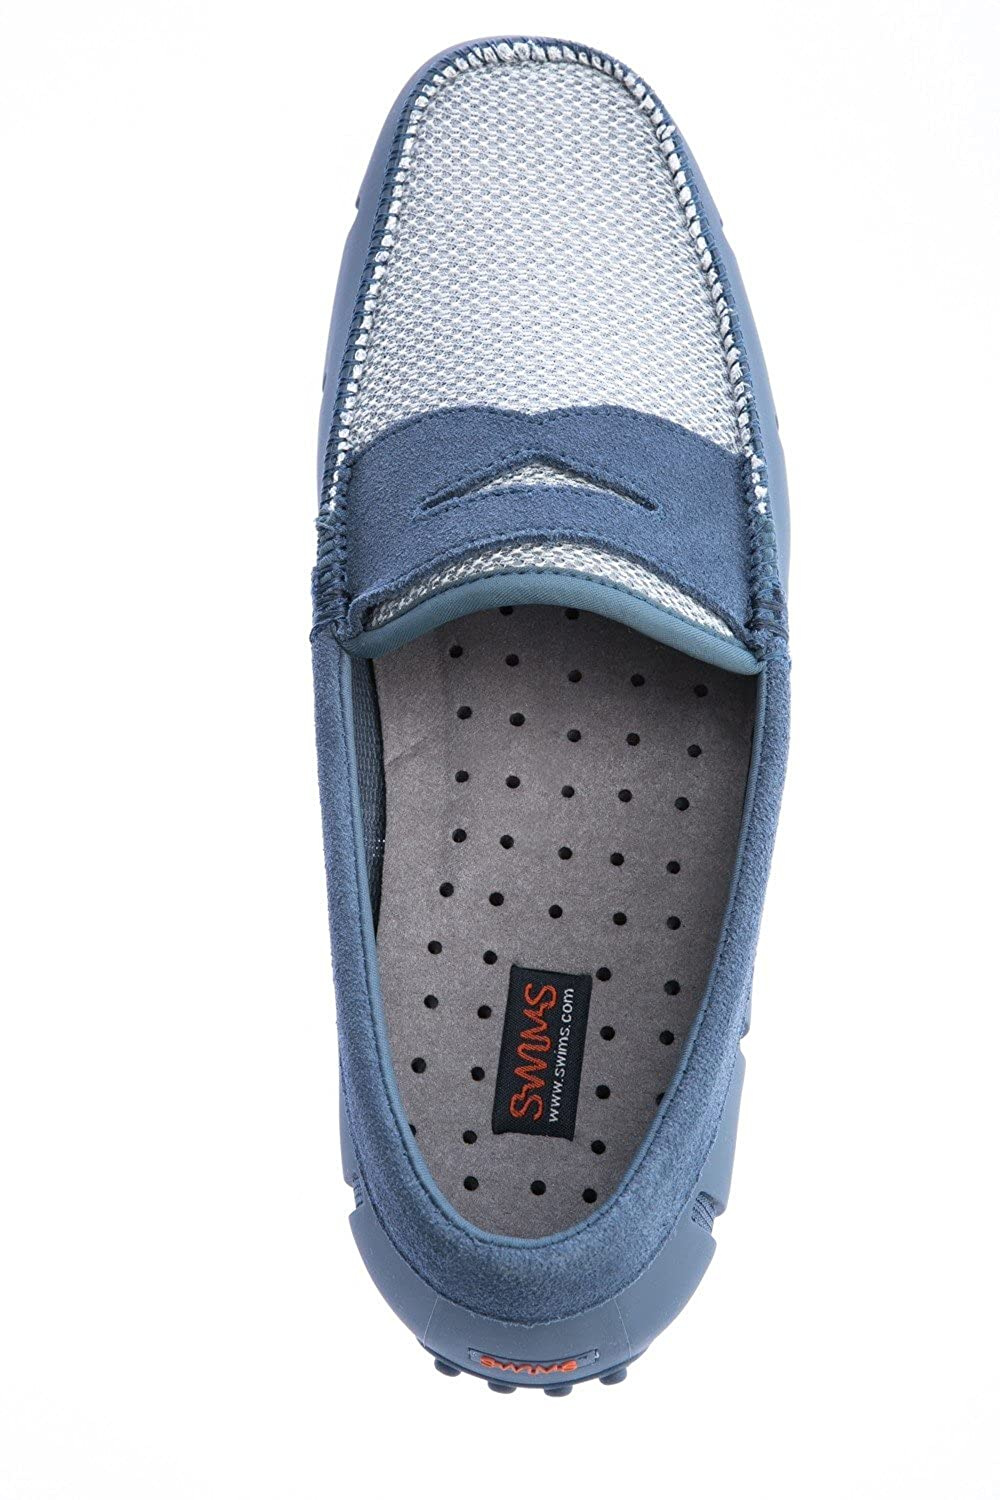 21b42a84ac6 Swims Men s Lux Penny Loafers Blue   Grey  Amazon.co.uk  Shoes   Bags